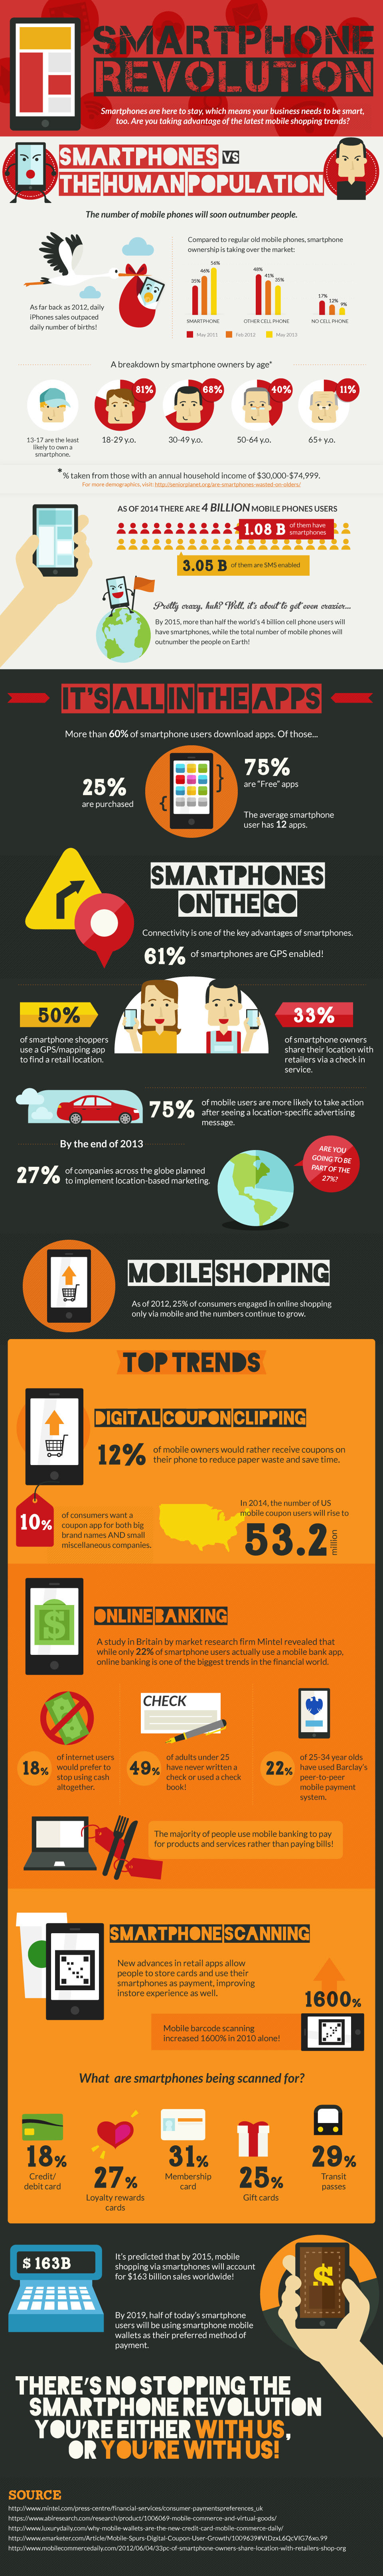 Smartphone Revolution: A Retailers Guide to the New Mobile Market - infographic